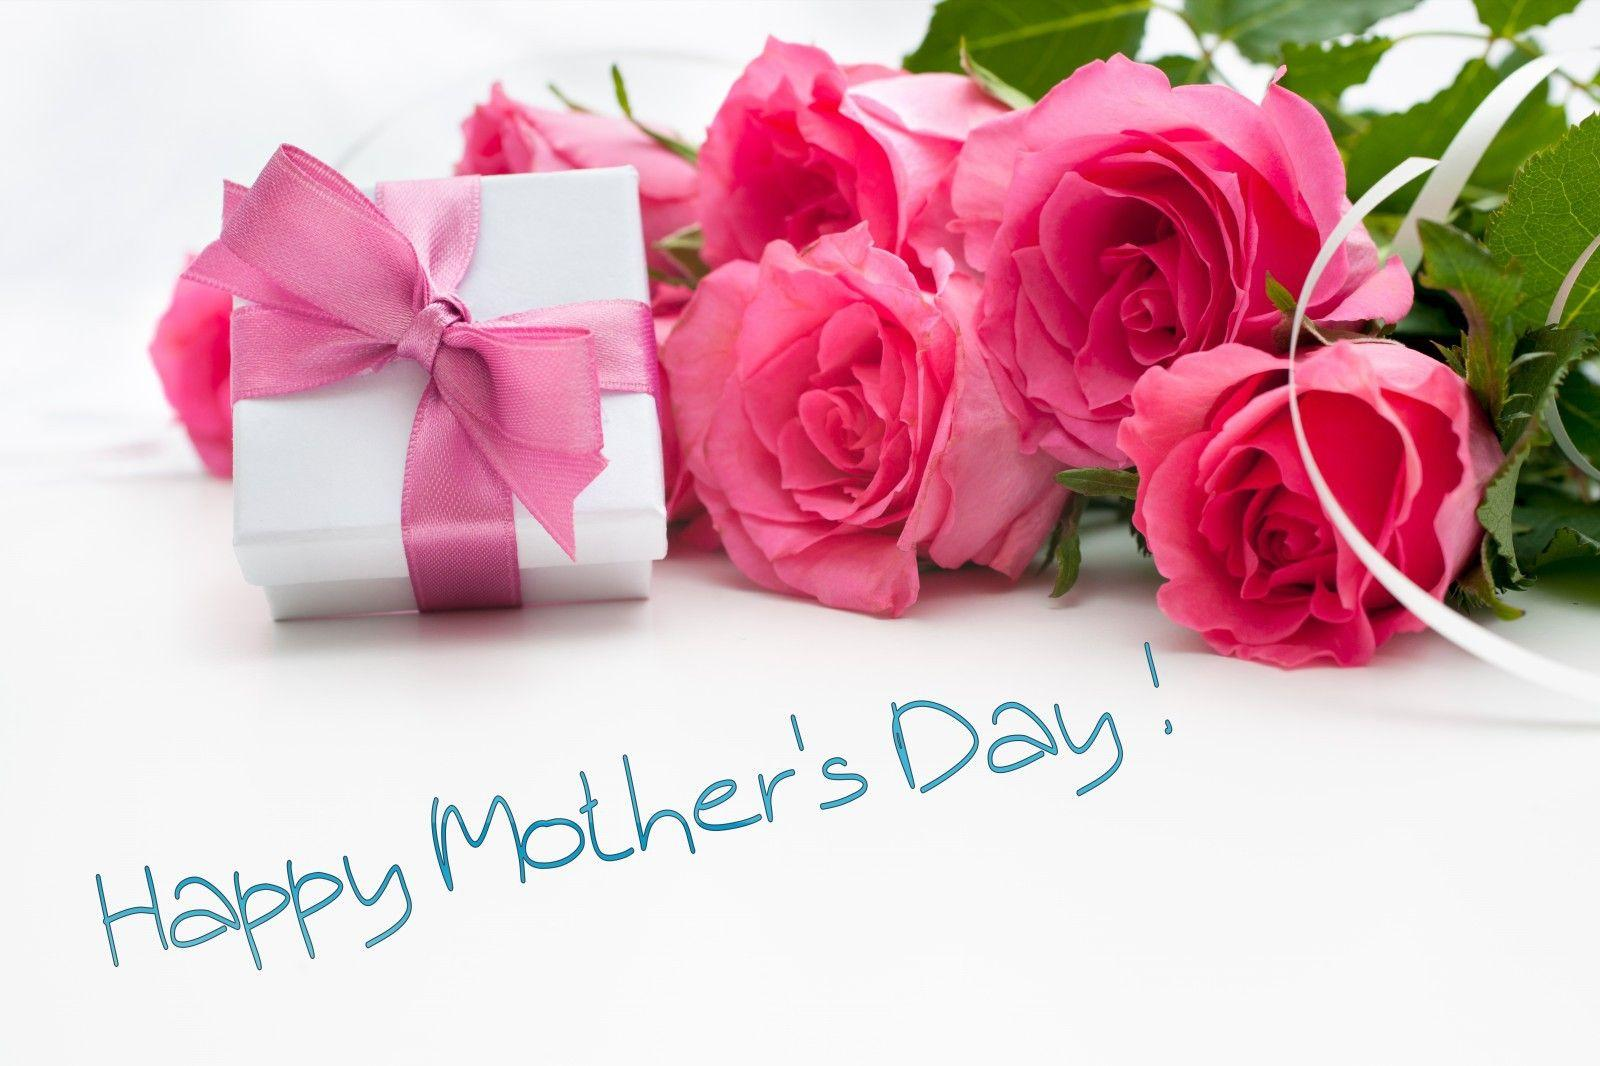 Mother's Day Wallpaper | 9To5Animations.Com